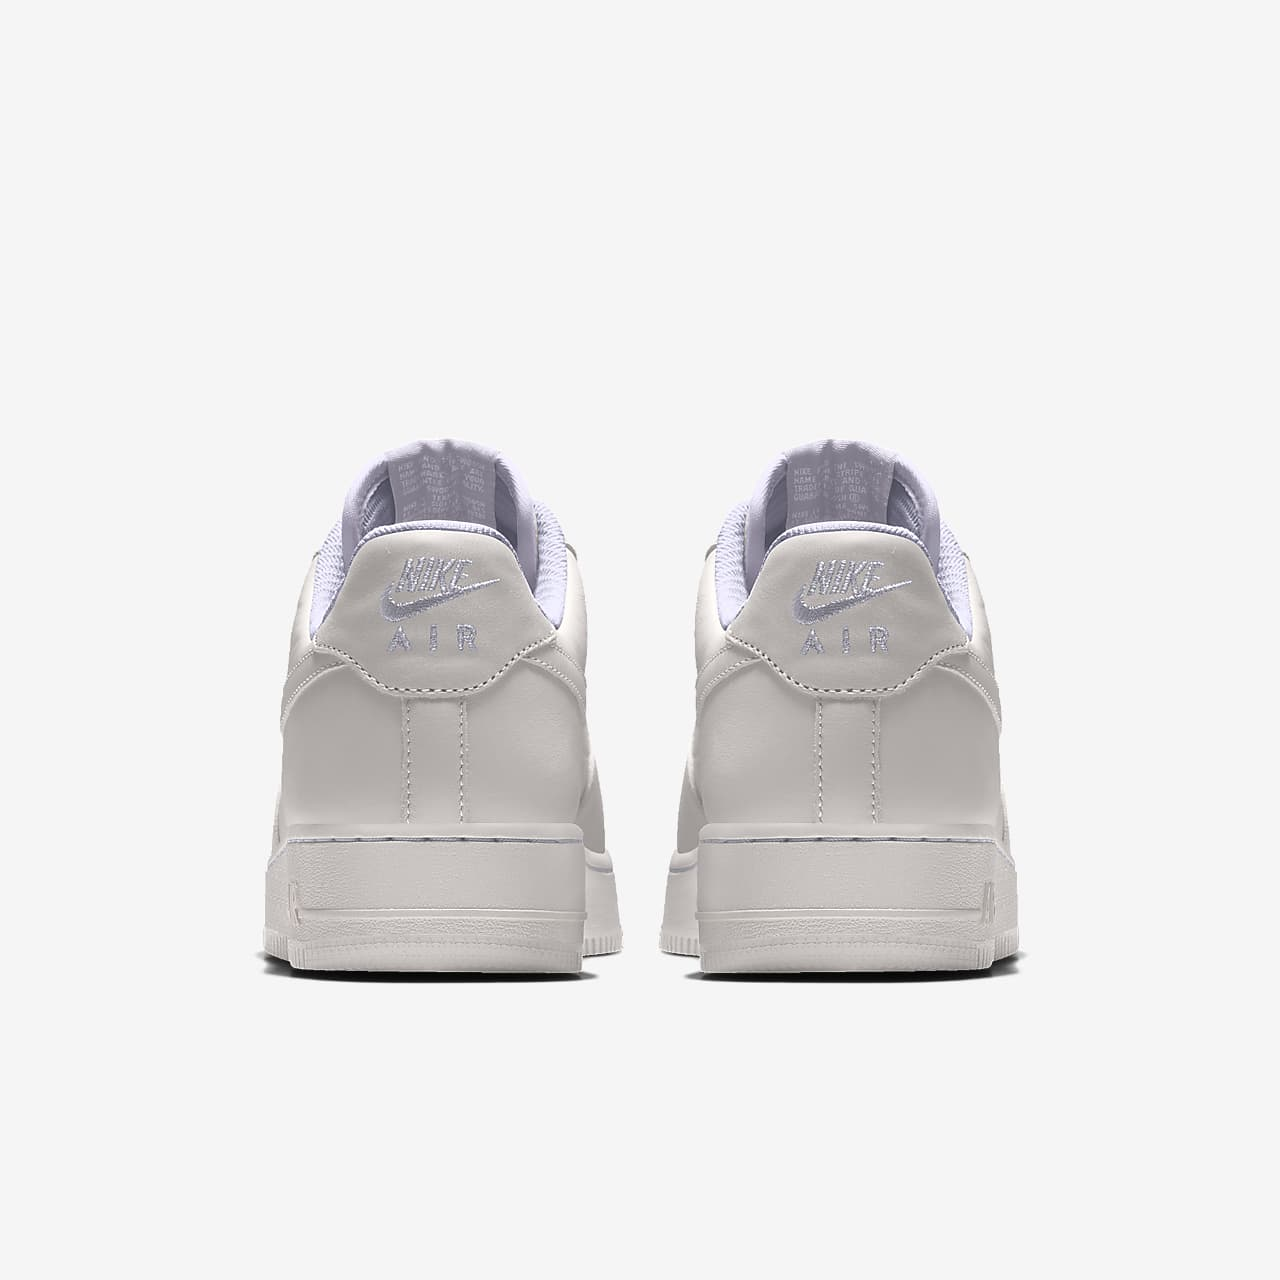 antiguo para castigar diámetro  Nike Air Force 1 Low By You Custom Women's Shoe. Nike AT